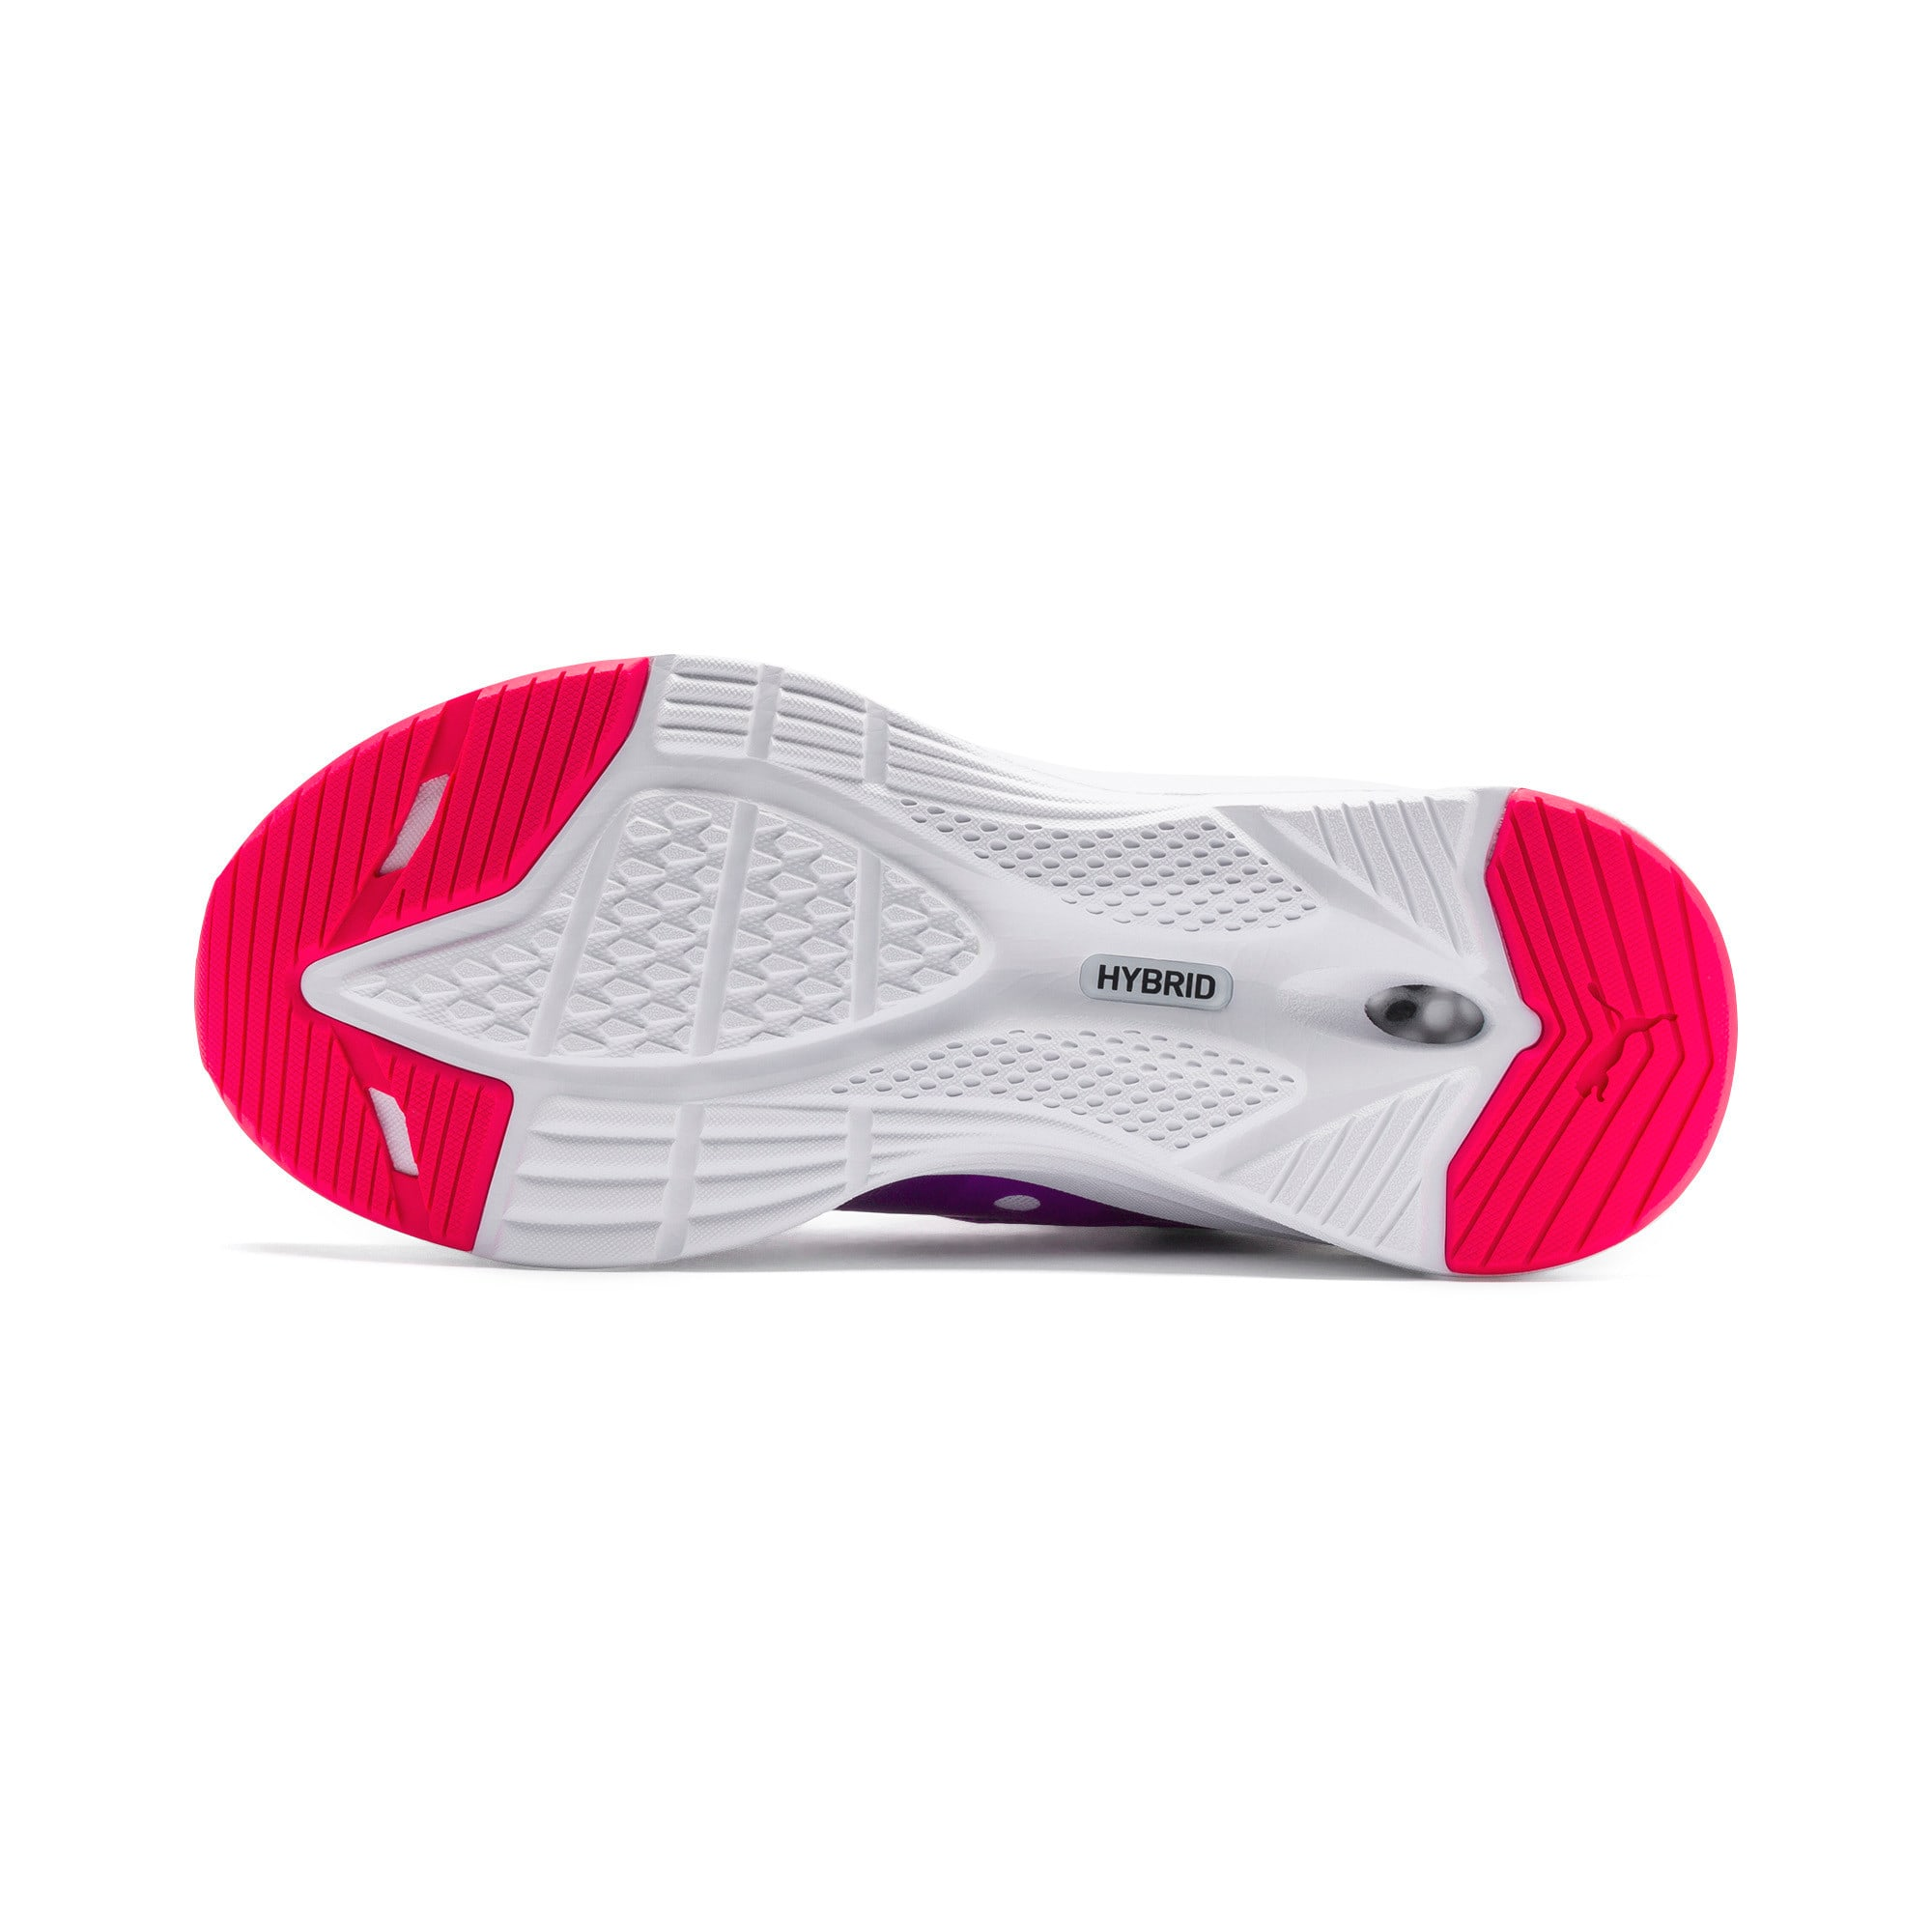 Thumbnail 4 of HYBRID Fuego Youth Trainers, Puma White-Royal Lilac, medium-IND